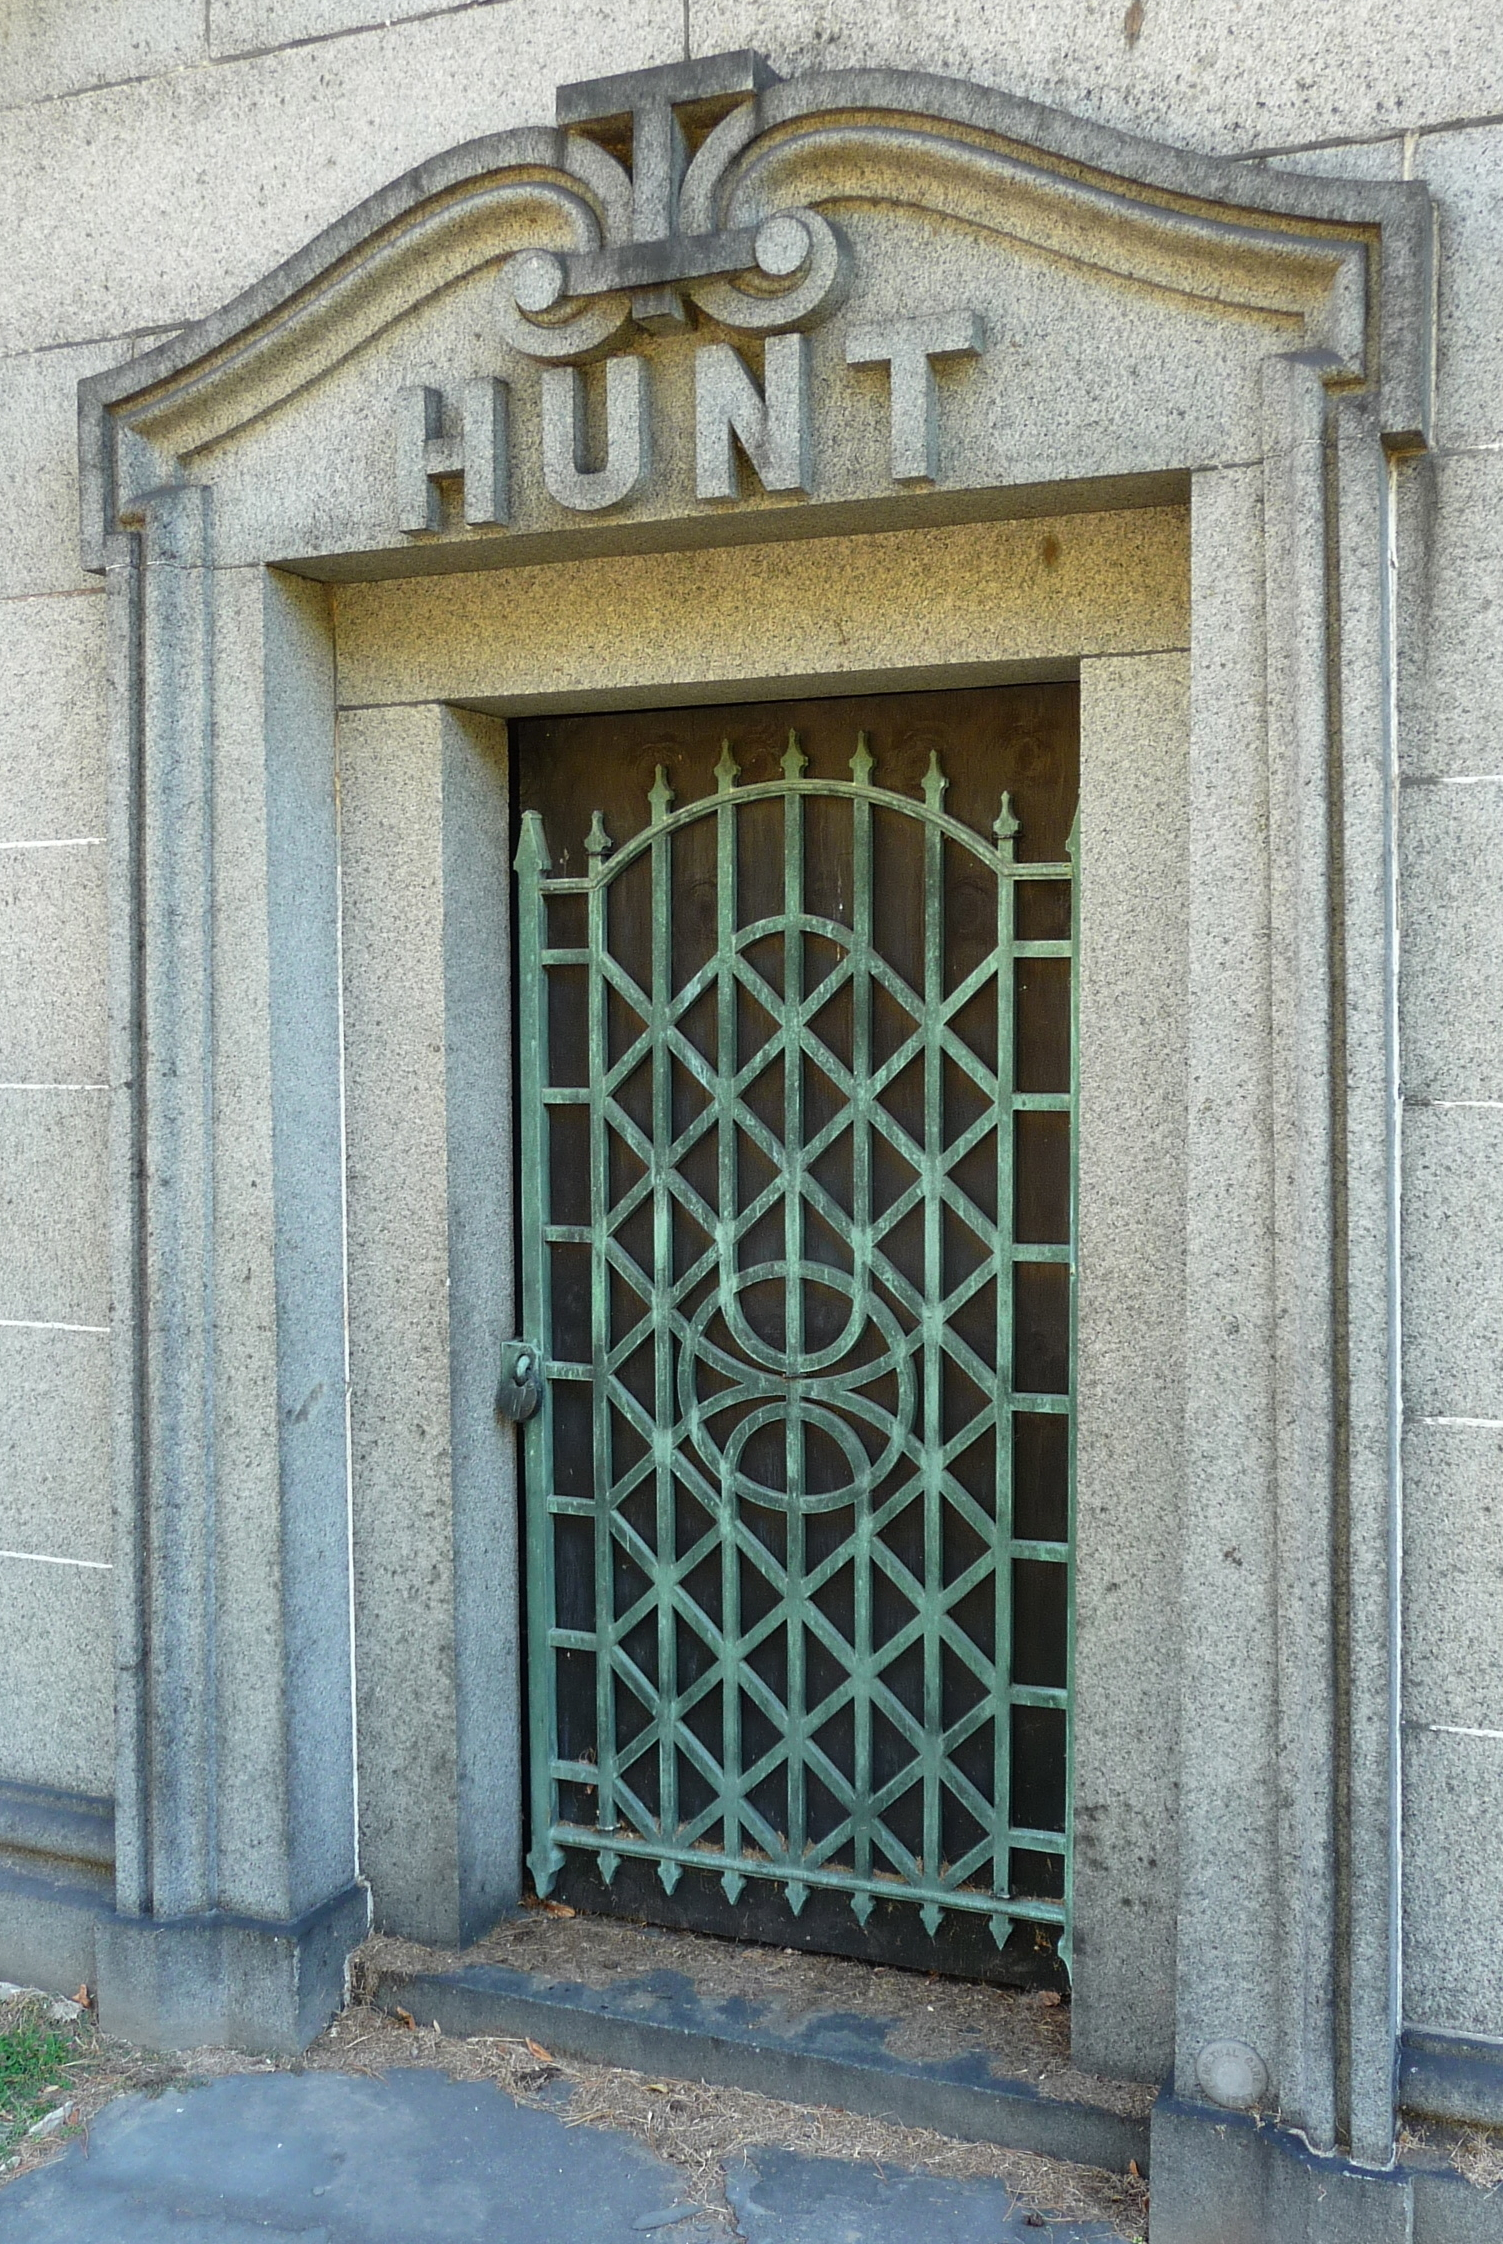 Hunt mausoleum door Green-Wood Cemetery Brooklyn & At Death\u0027s Door: Beautiful Mausoleum Doors At Green-Wood Cemetery